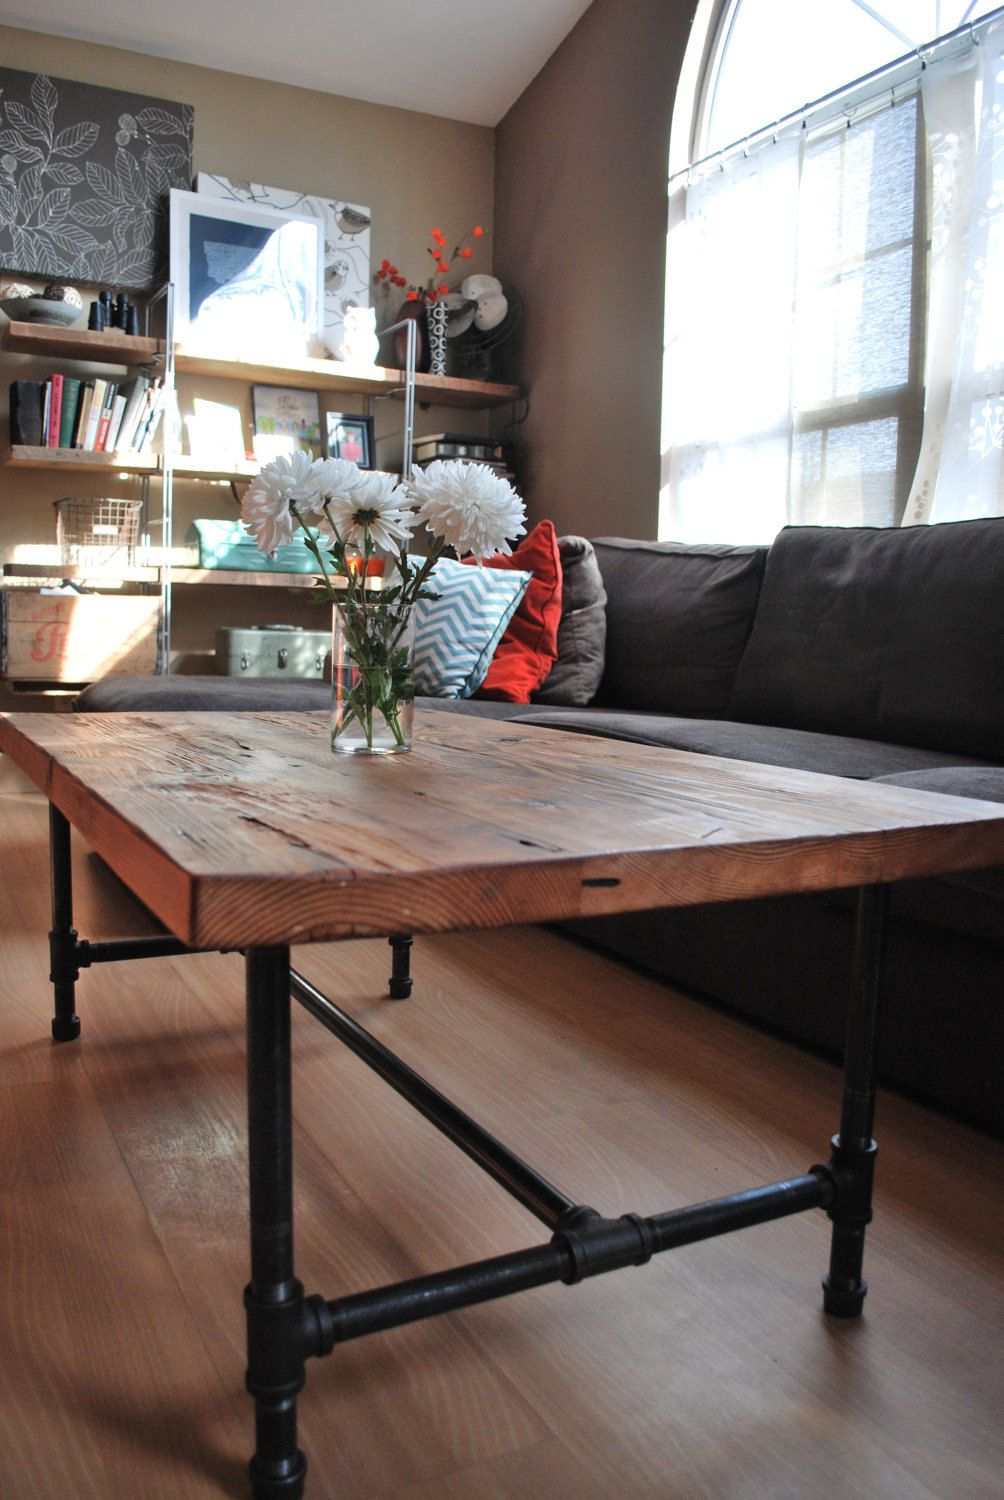 I Love This Table Furniture Coffee Table Wood Reclaimed Wood Coffee Table [ 1500 x 1004 Pixel ]